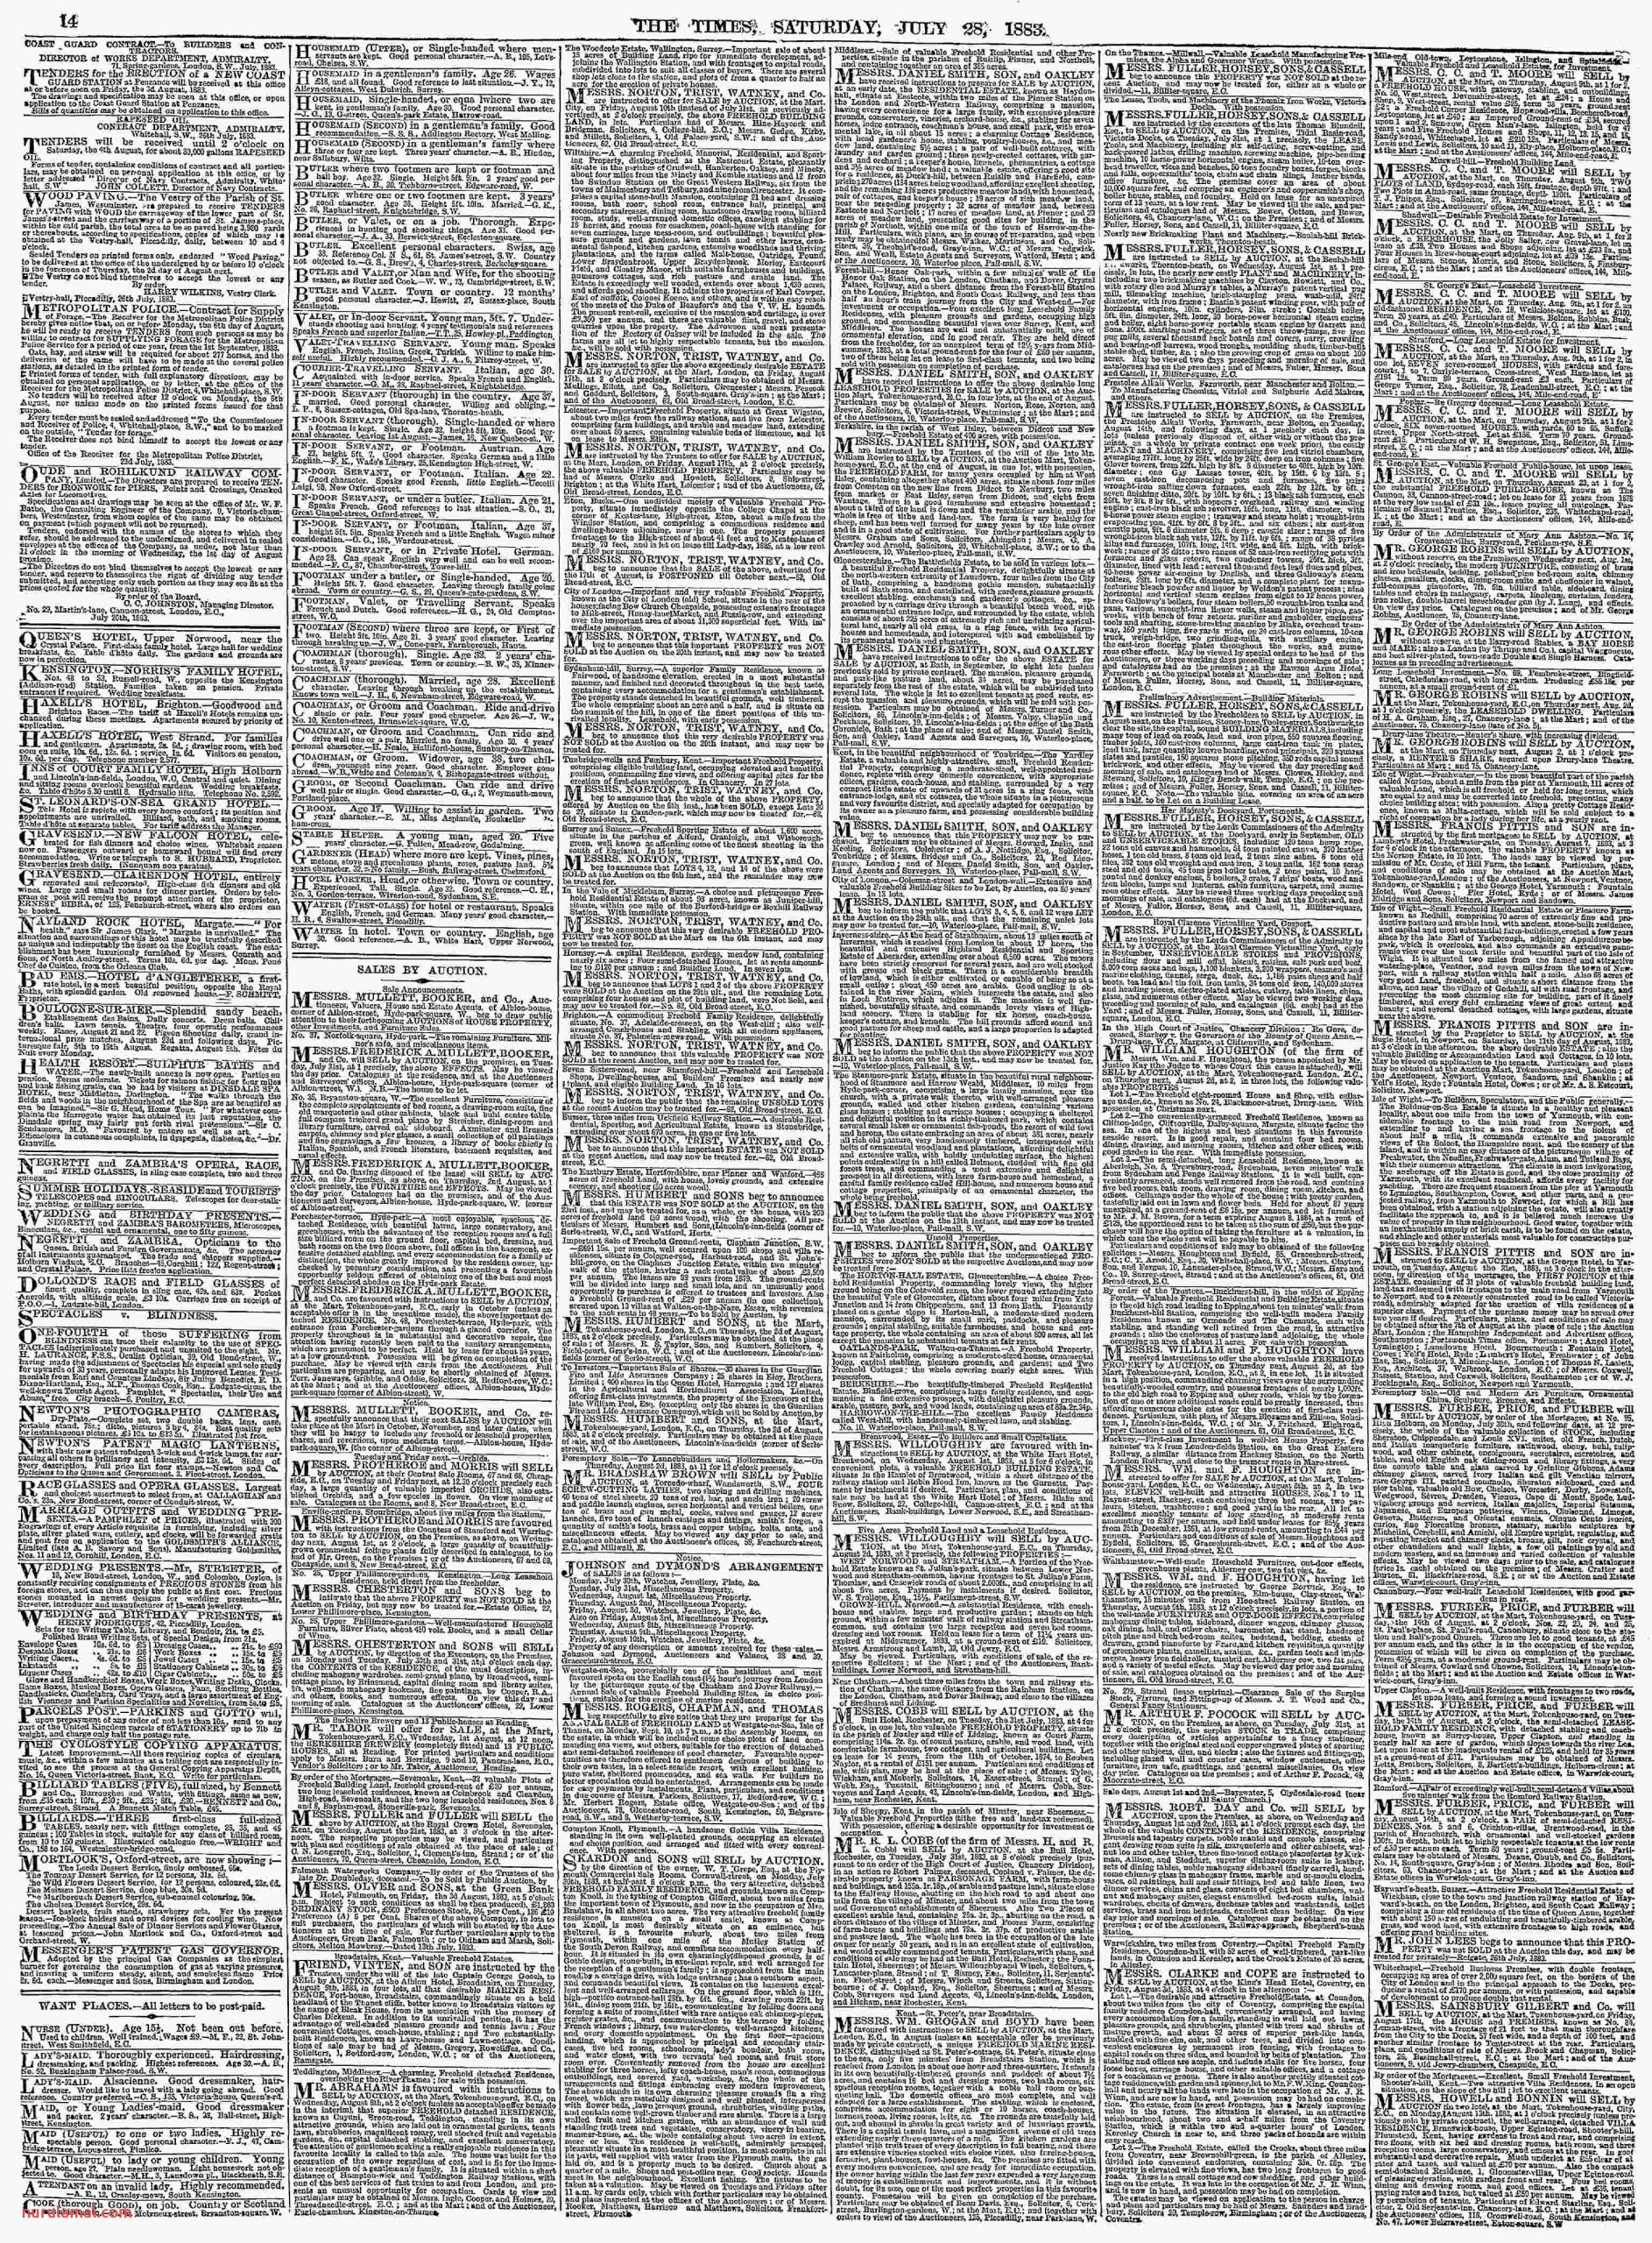 Archive Page Viewer July 28 1883